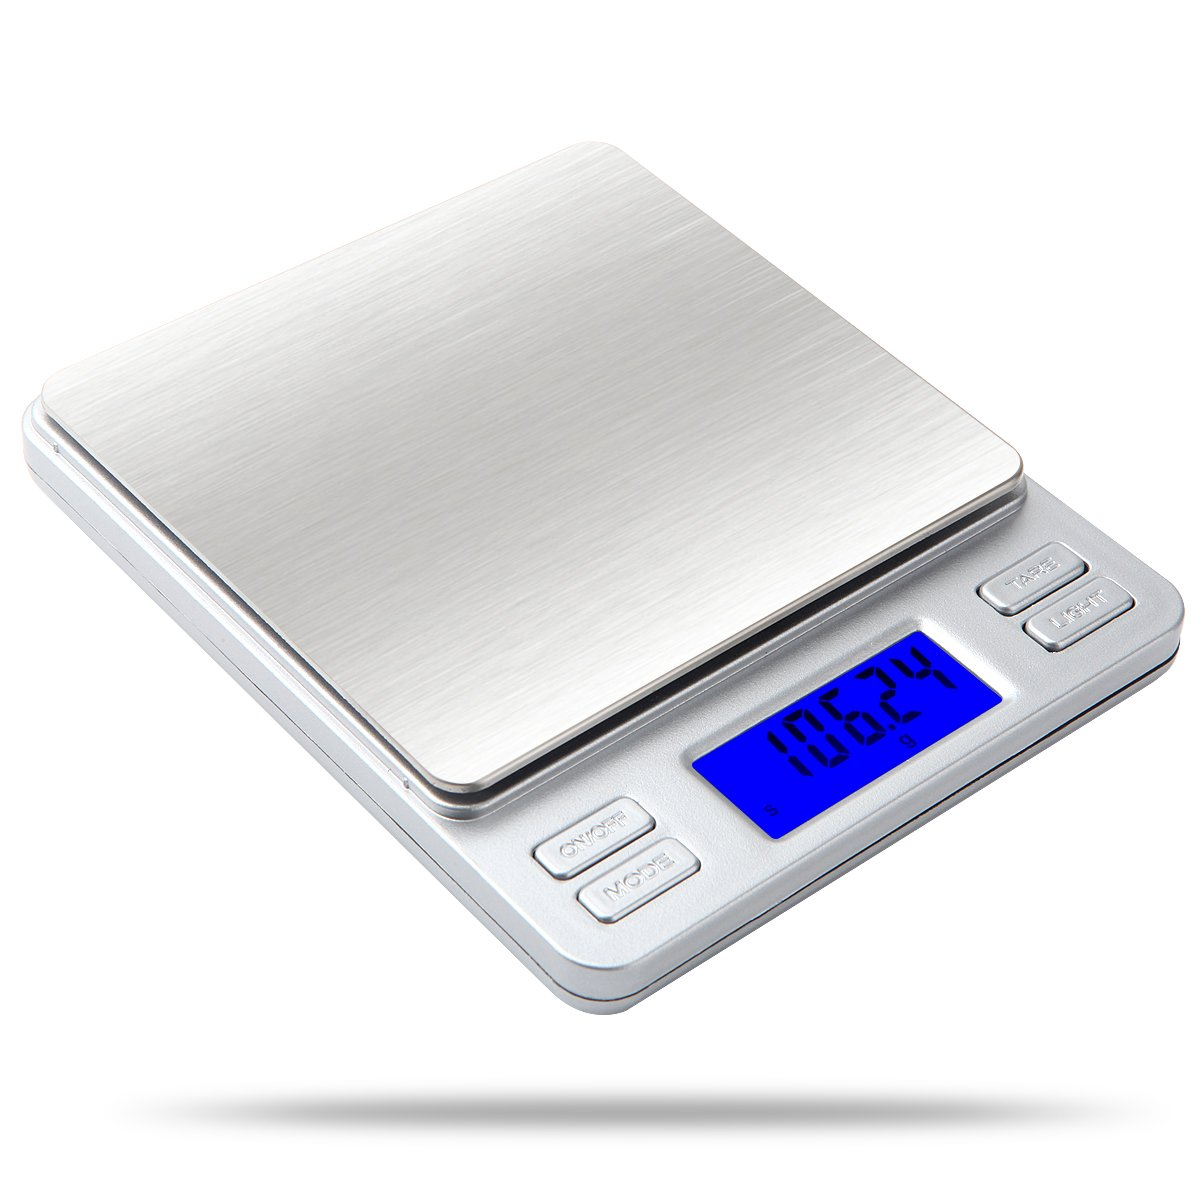 Weigh Gram 1000g/0.1g Digital Kitchen Scale Food Scale Pocket Scale High-Precision Multifunctional Pro Scale with Back-Lit LCD Display, Tare, Light Features, Stainless Steel (TP-1KG)